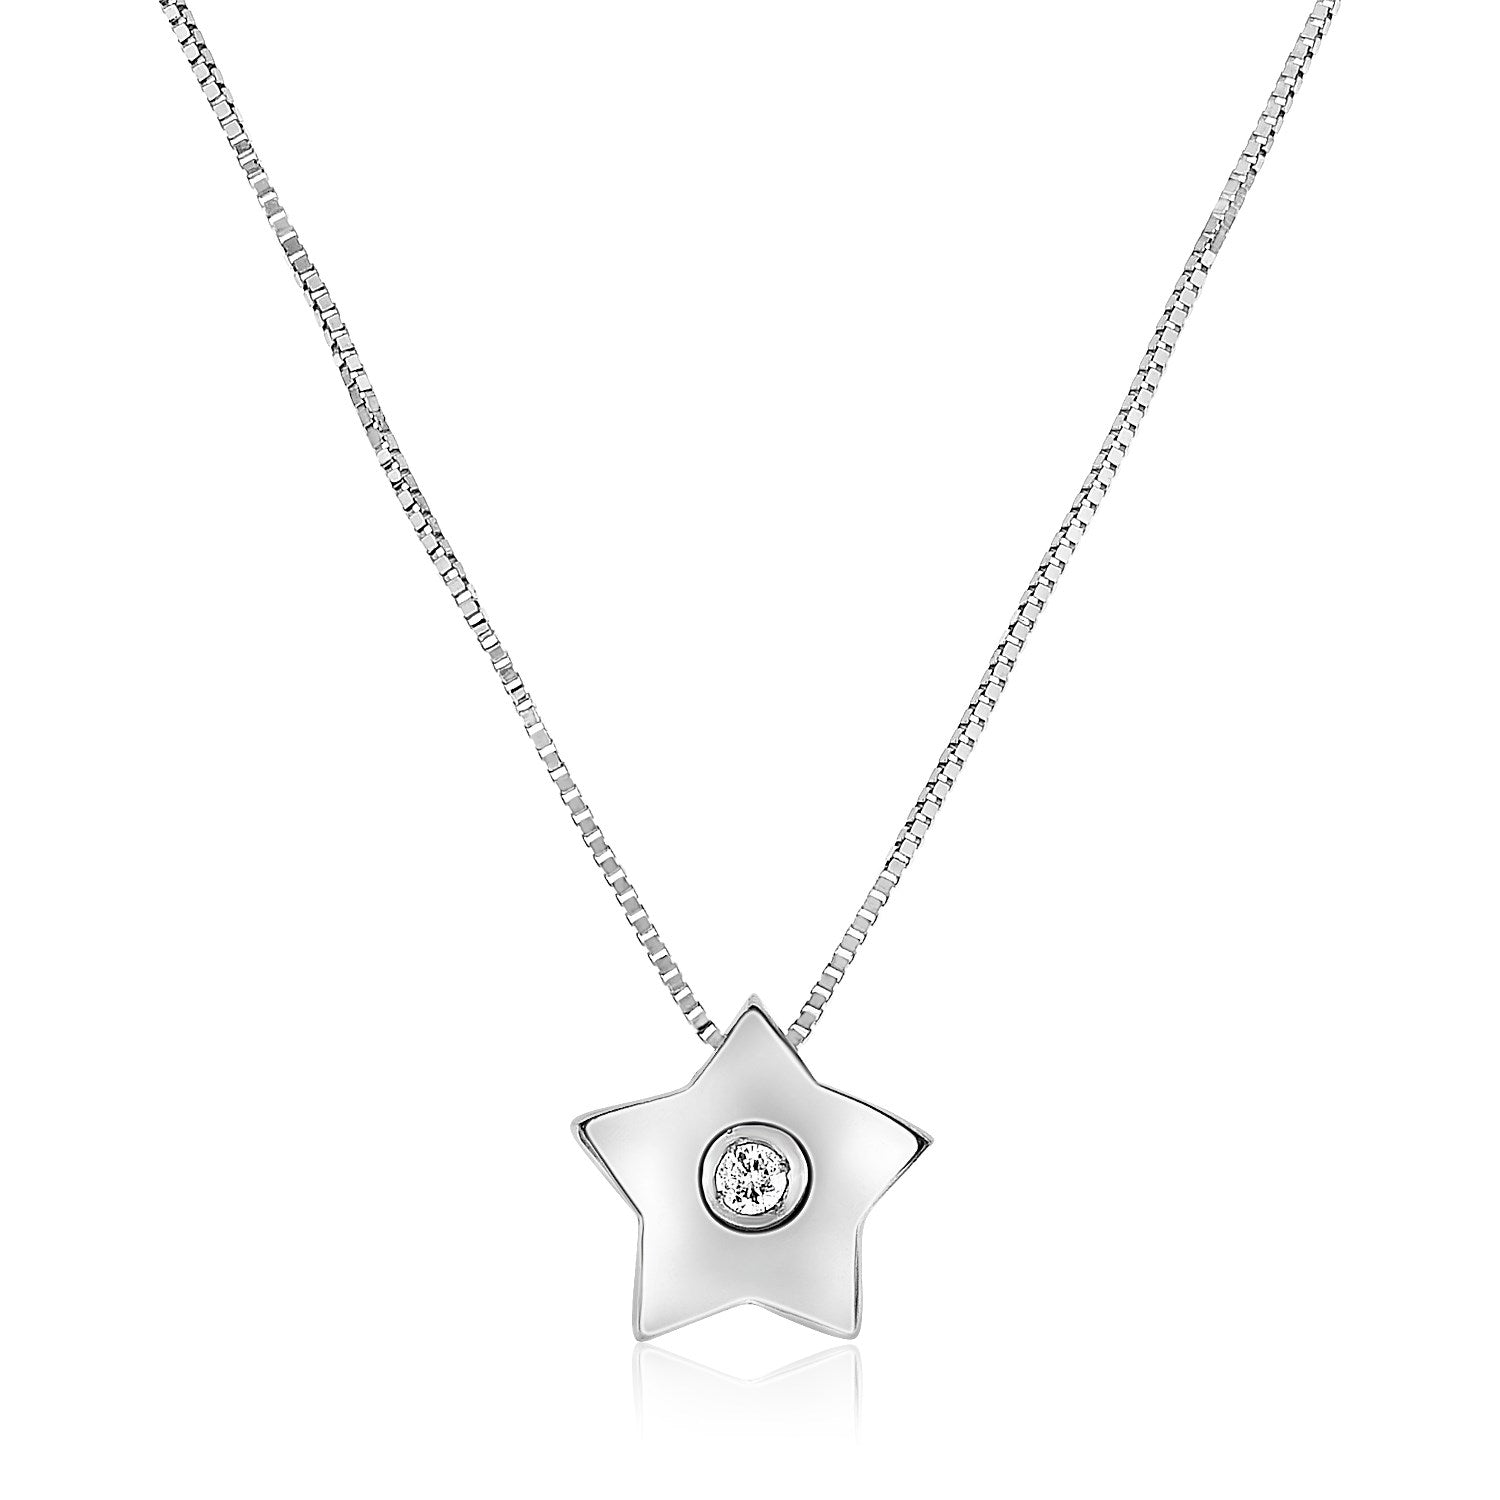 number pendant product material l necklaces samuel diamond category white webstore h necklace gold swirl jewellery